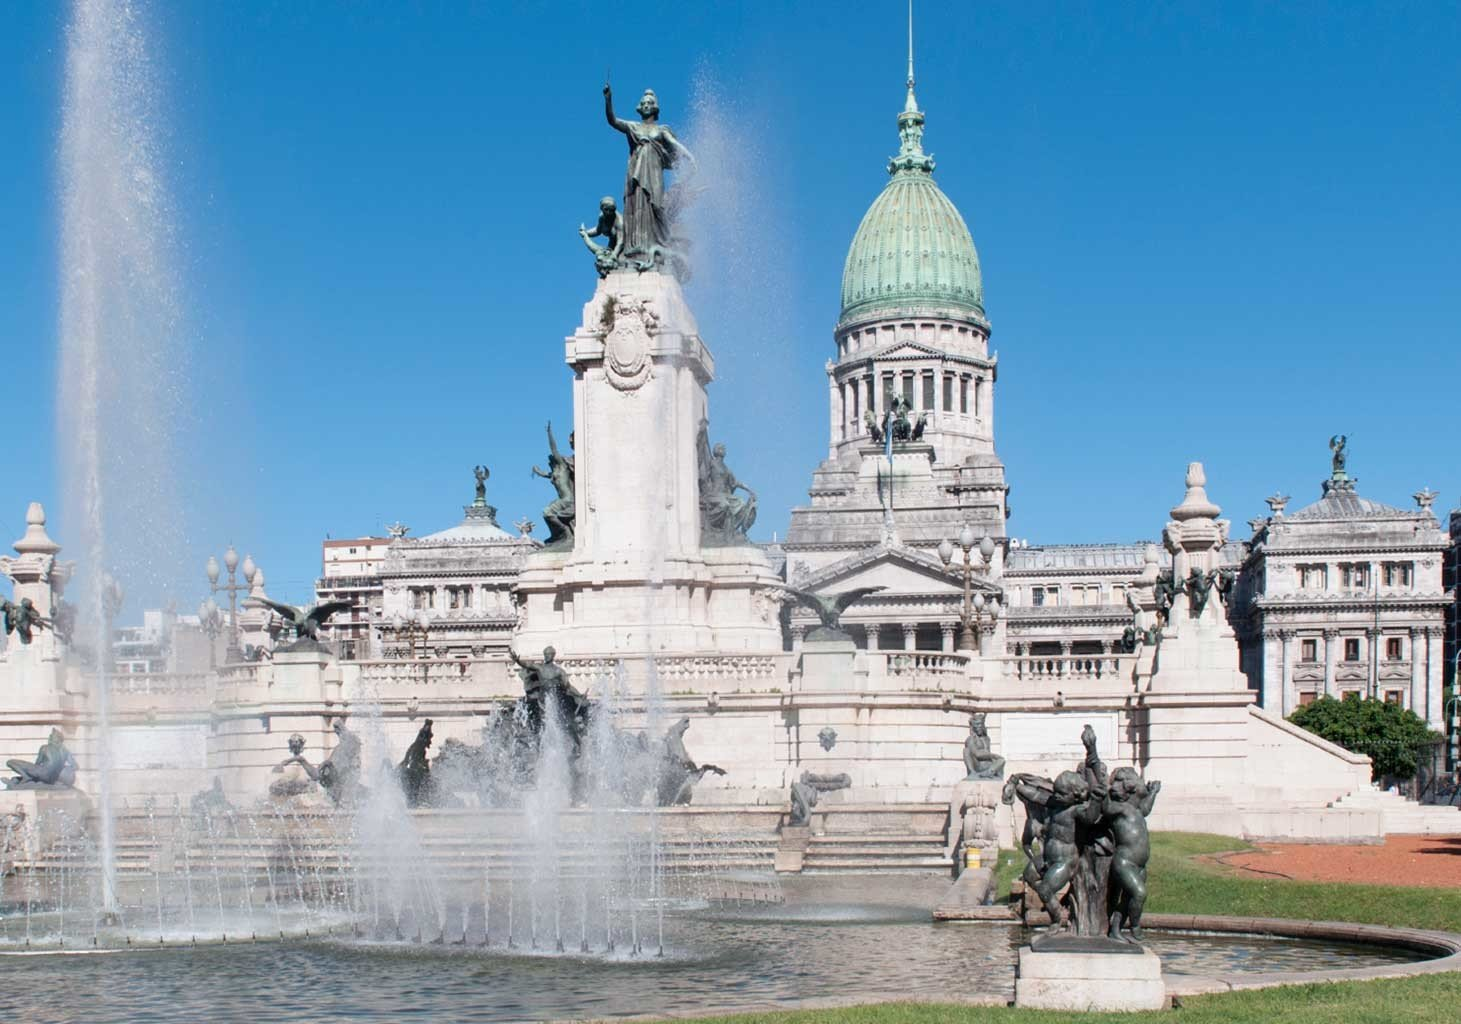 landmark building monument statue fountain plaza town square water feature tours memorial palace